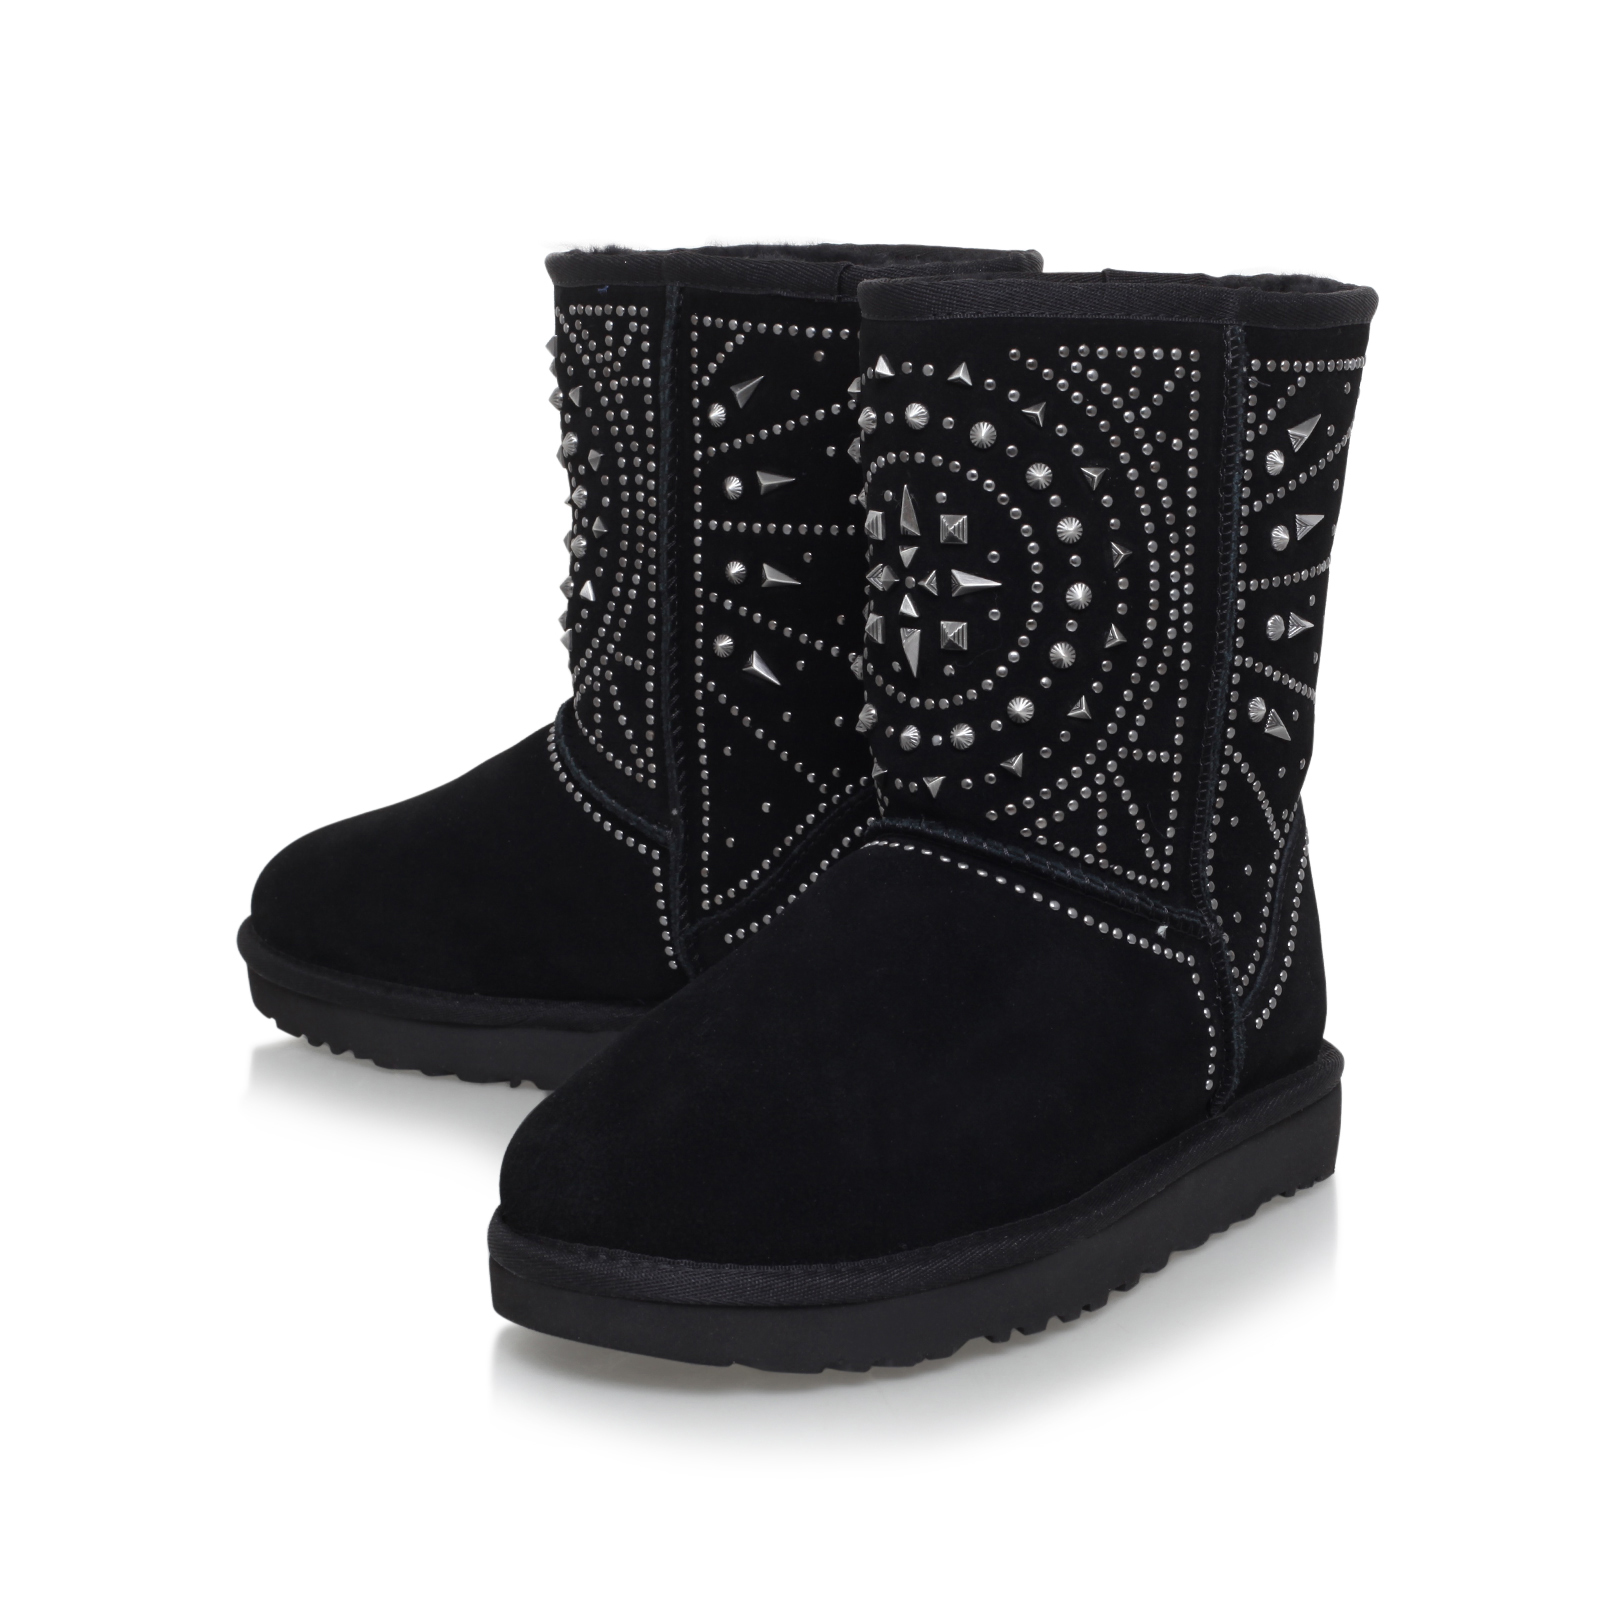 FIORE DECO STUDS Ugg Fiore Deco Studs Black Suede Ankle Boots by UGG  AUSTRALIA